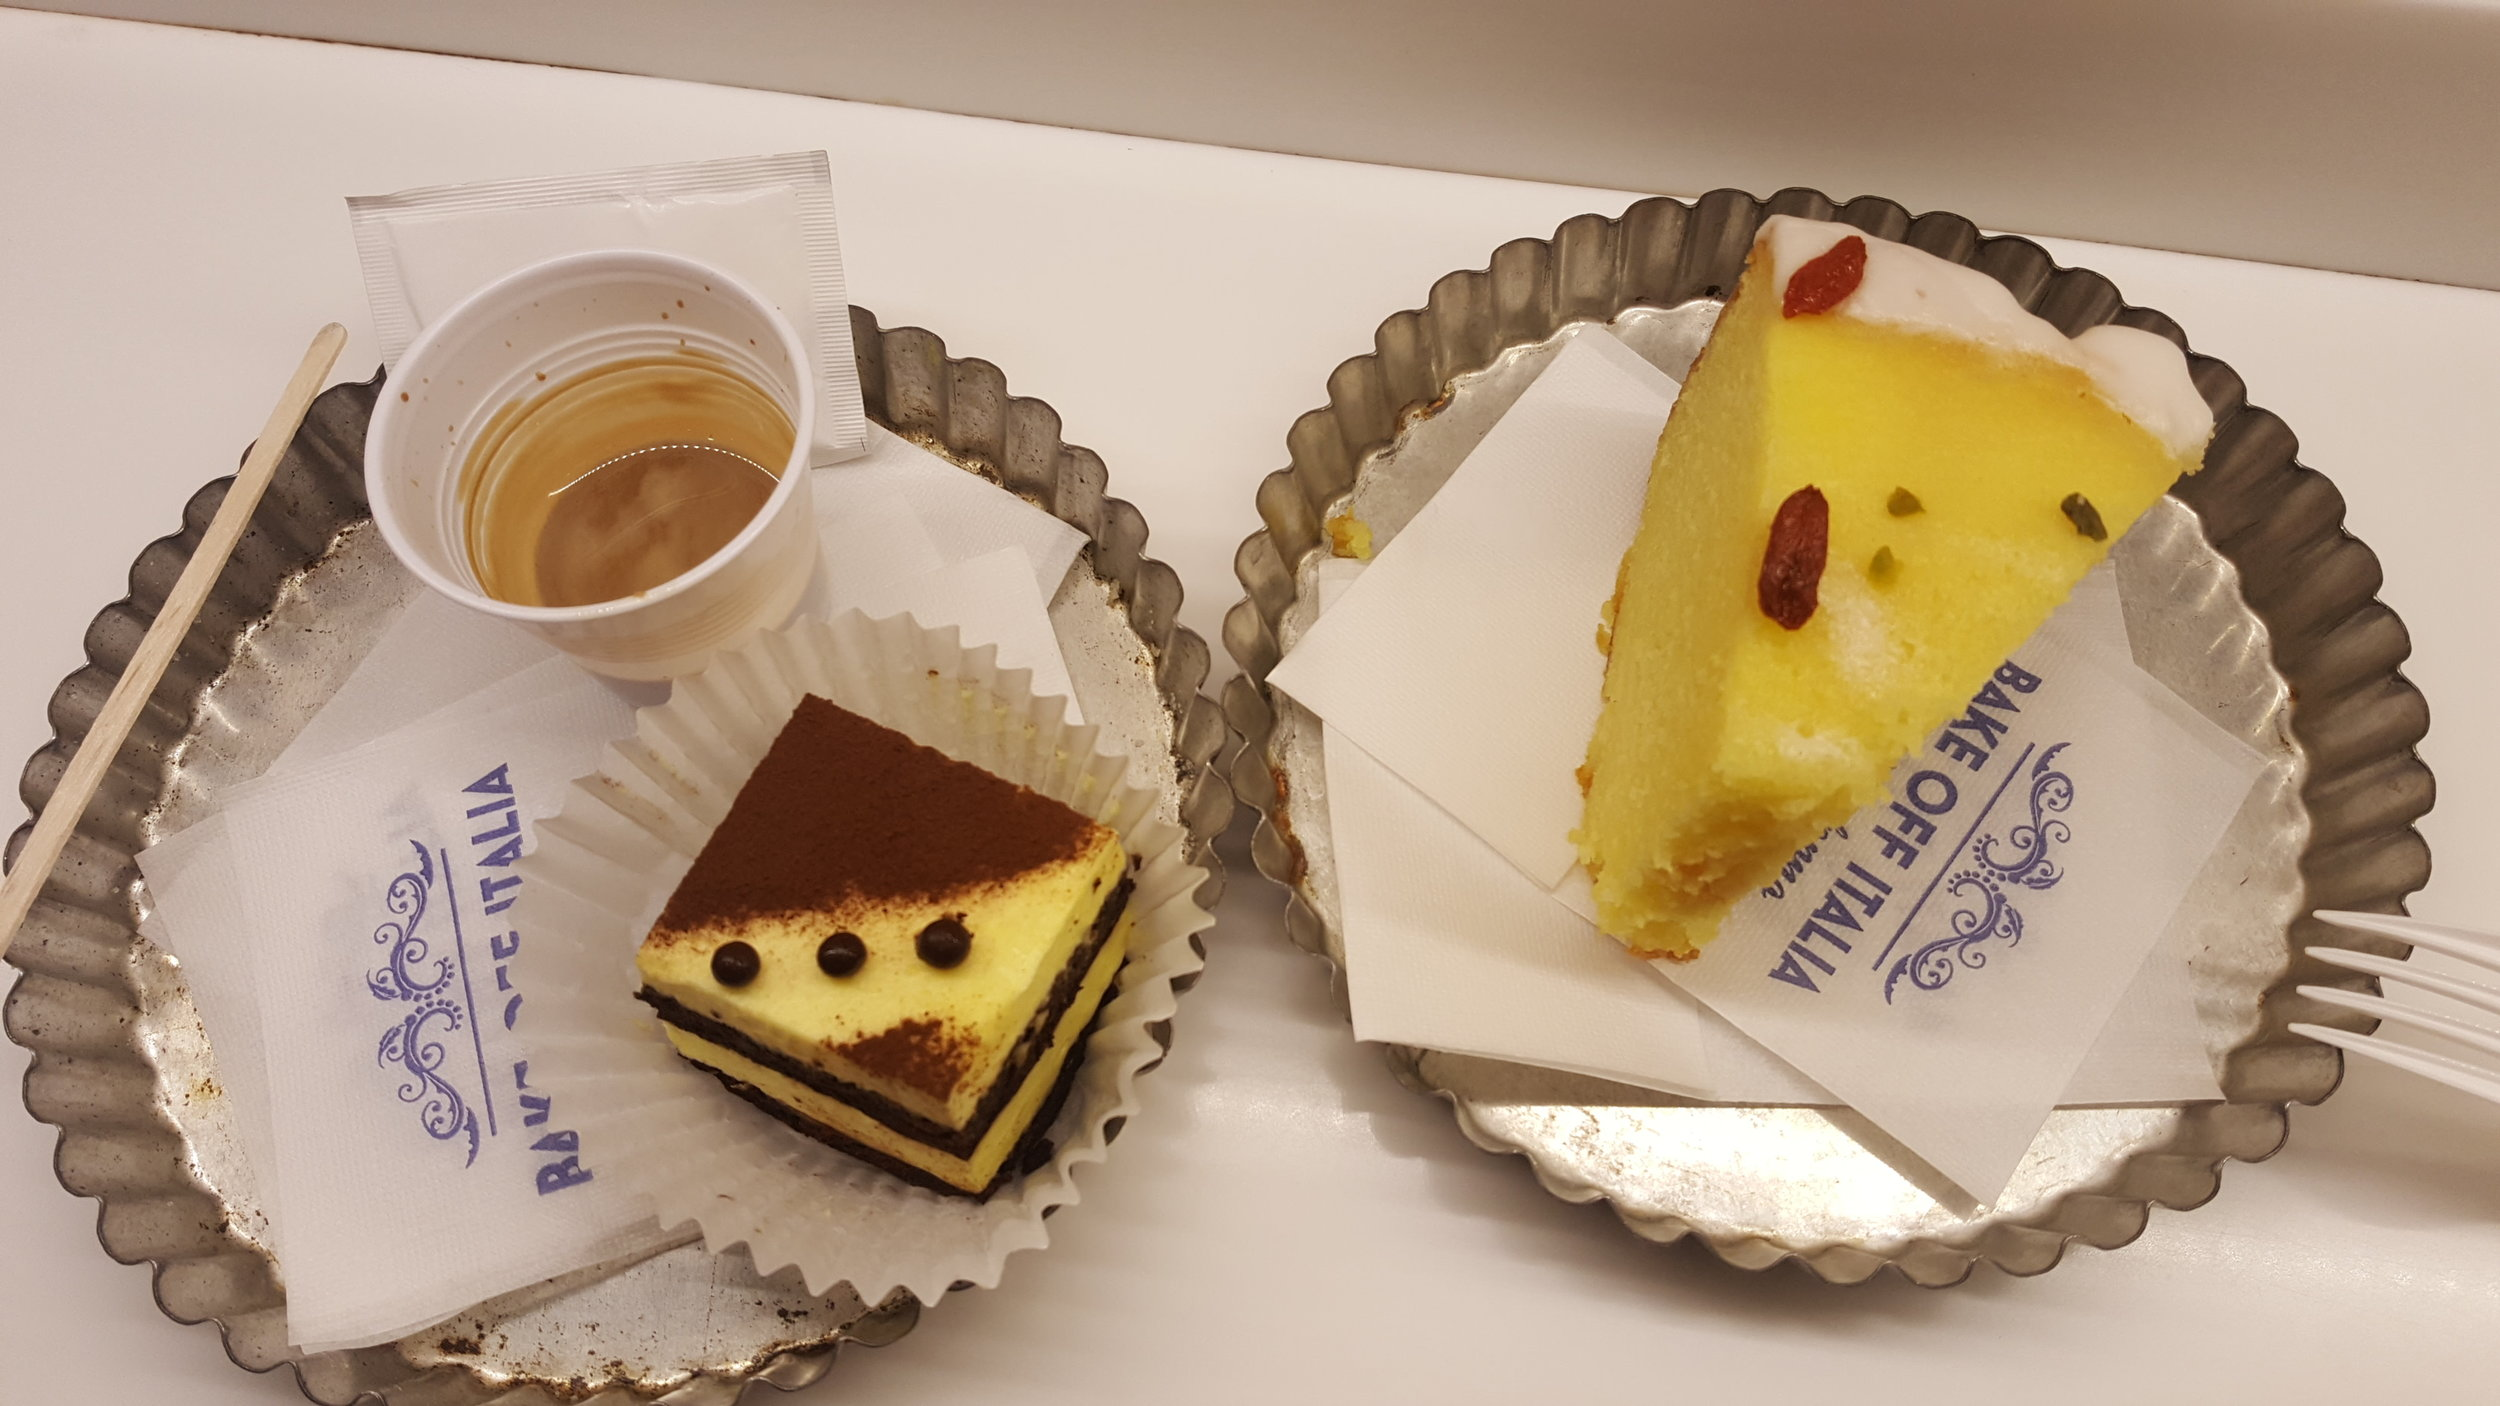 A beautiful lemon cake and tiramisu from MADE Creative Bakery.  Served in fluted tart tins... so cute!